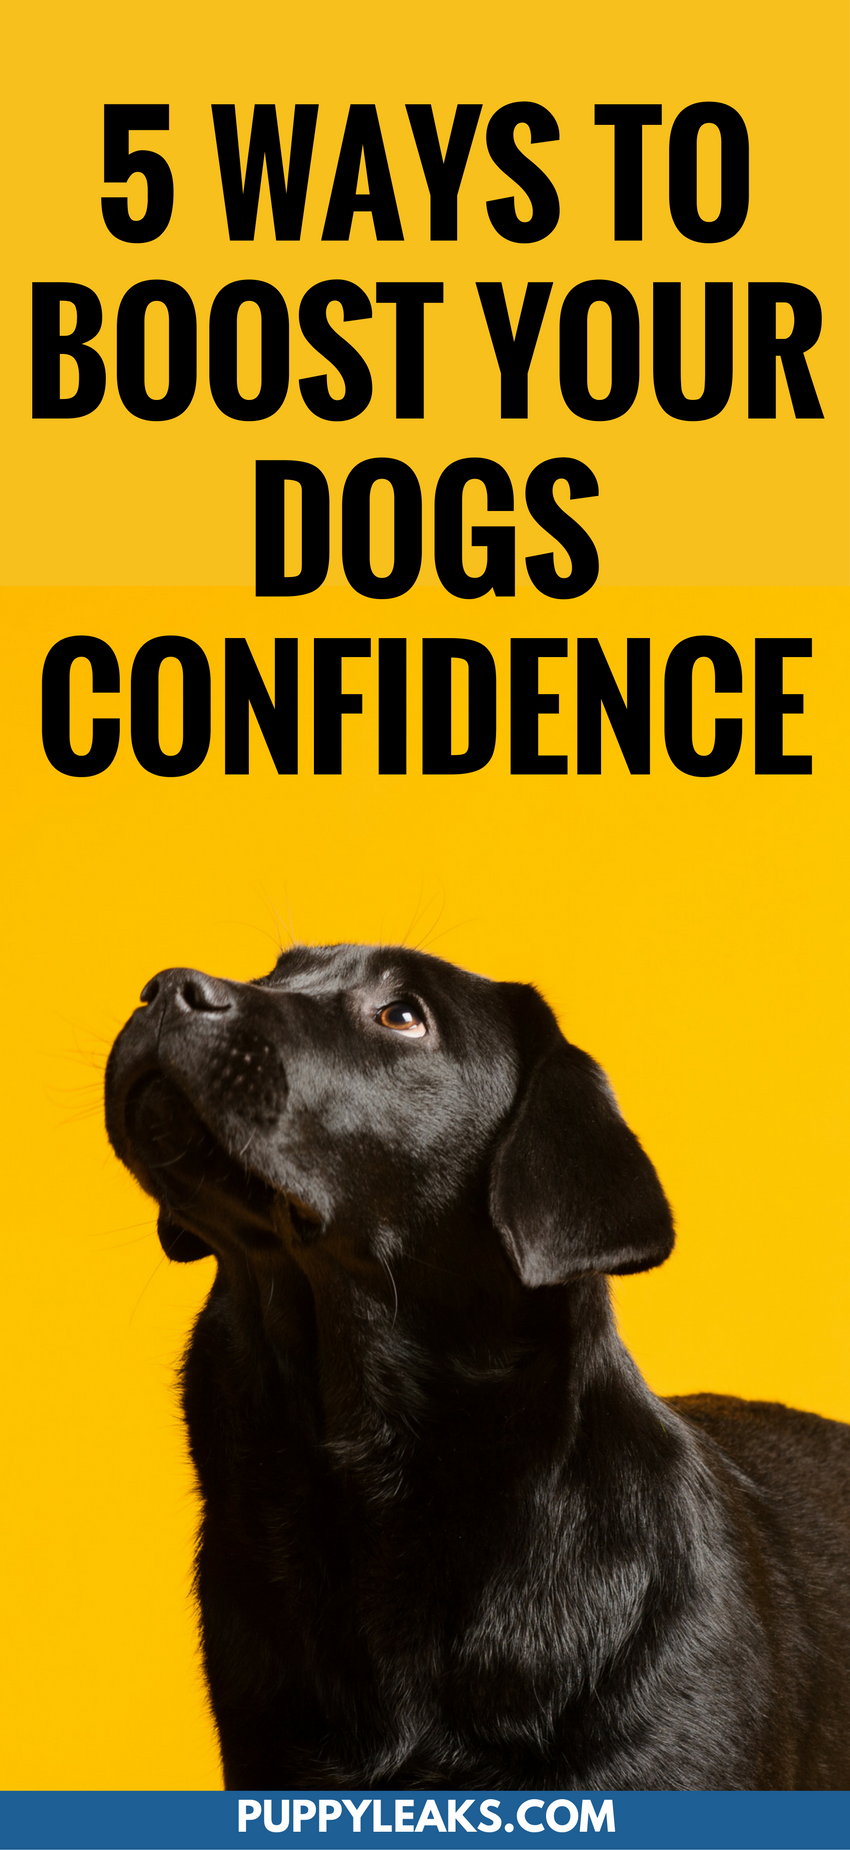 Is your dog shy and fearful around new people? Do they get scared in new situations. By working on some basic obedience work you can help boost your dogs confidence in new situations. Here's 5 ways to boost your dog's confidence. #dogs #dogtips #dogcare #dogtraining #dogadvice #puppies #puppy #puppytraining #puppytips